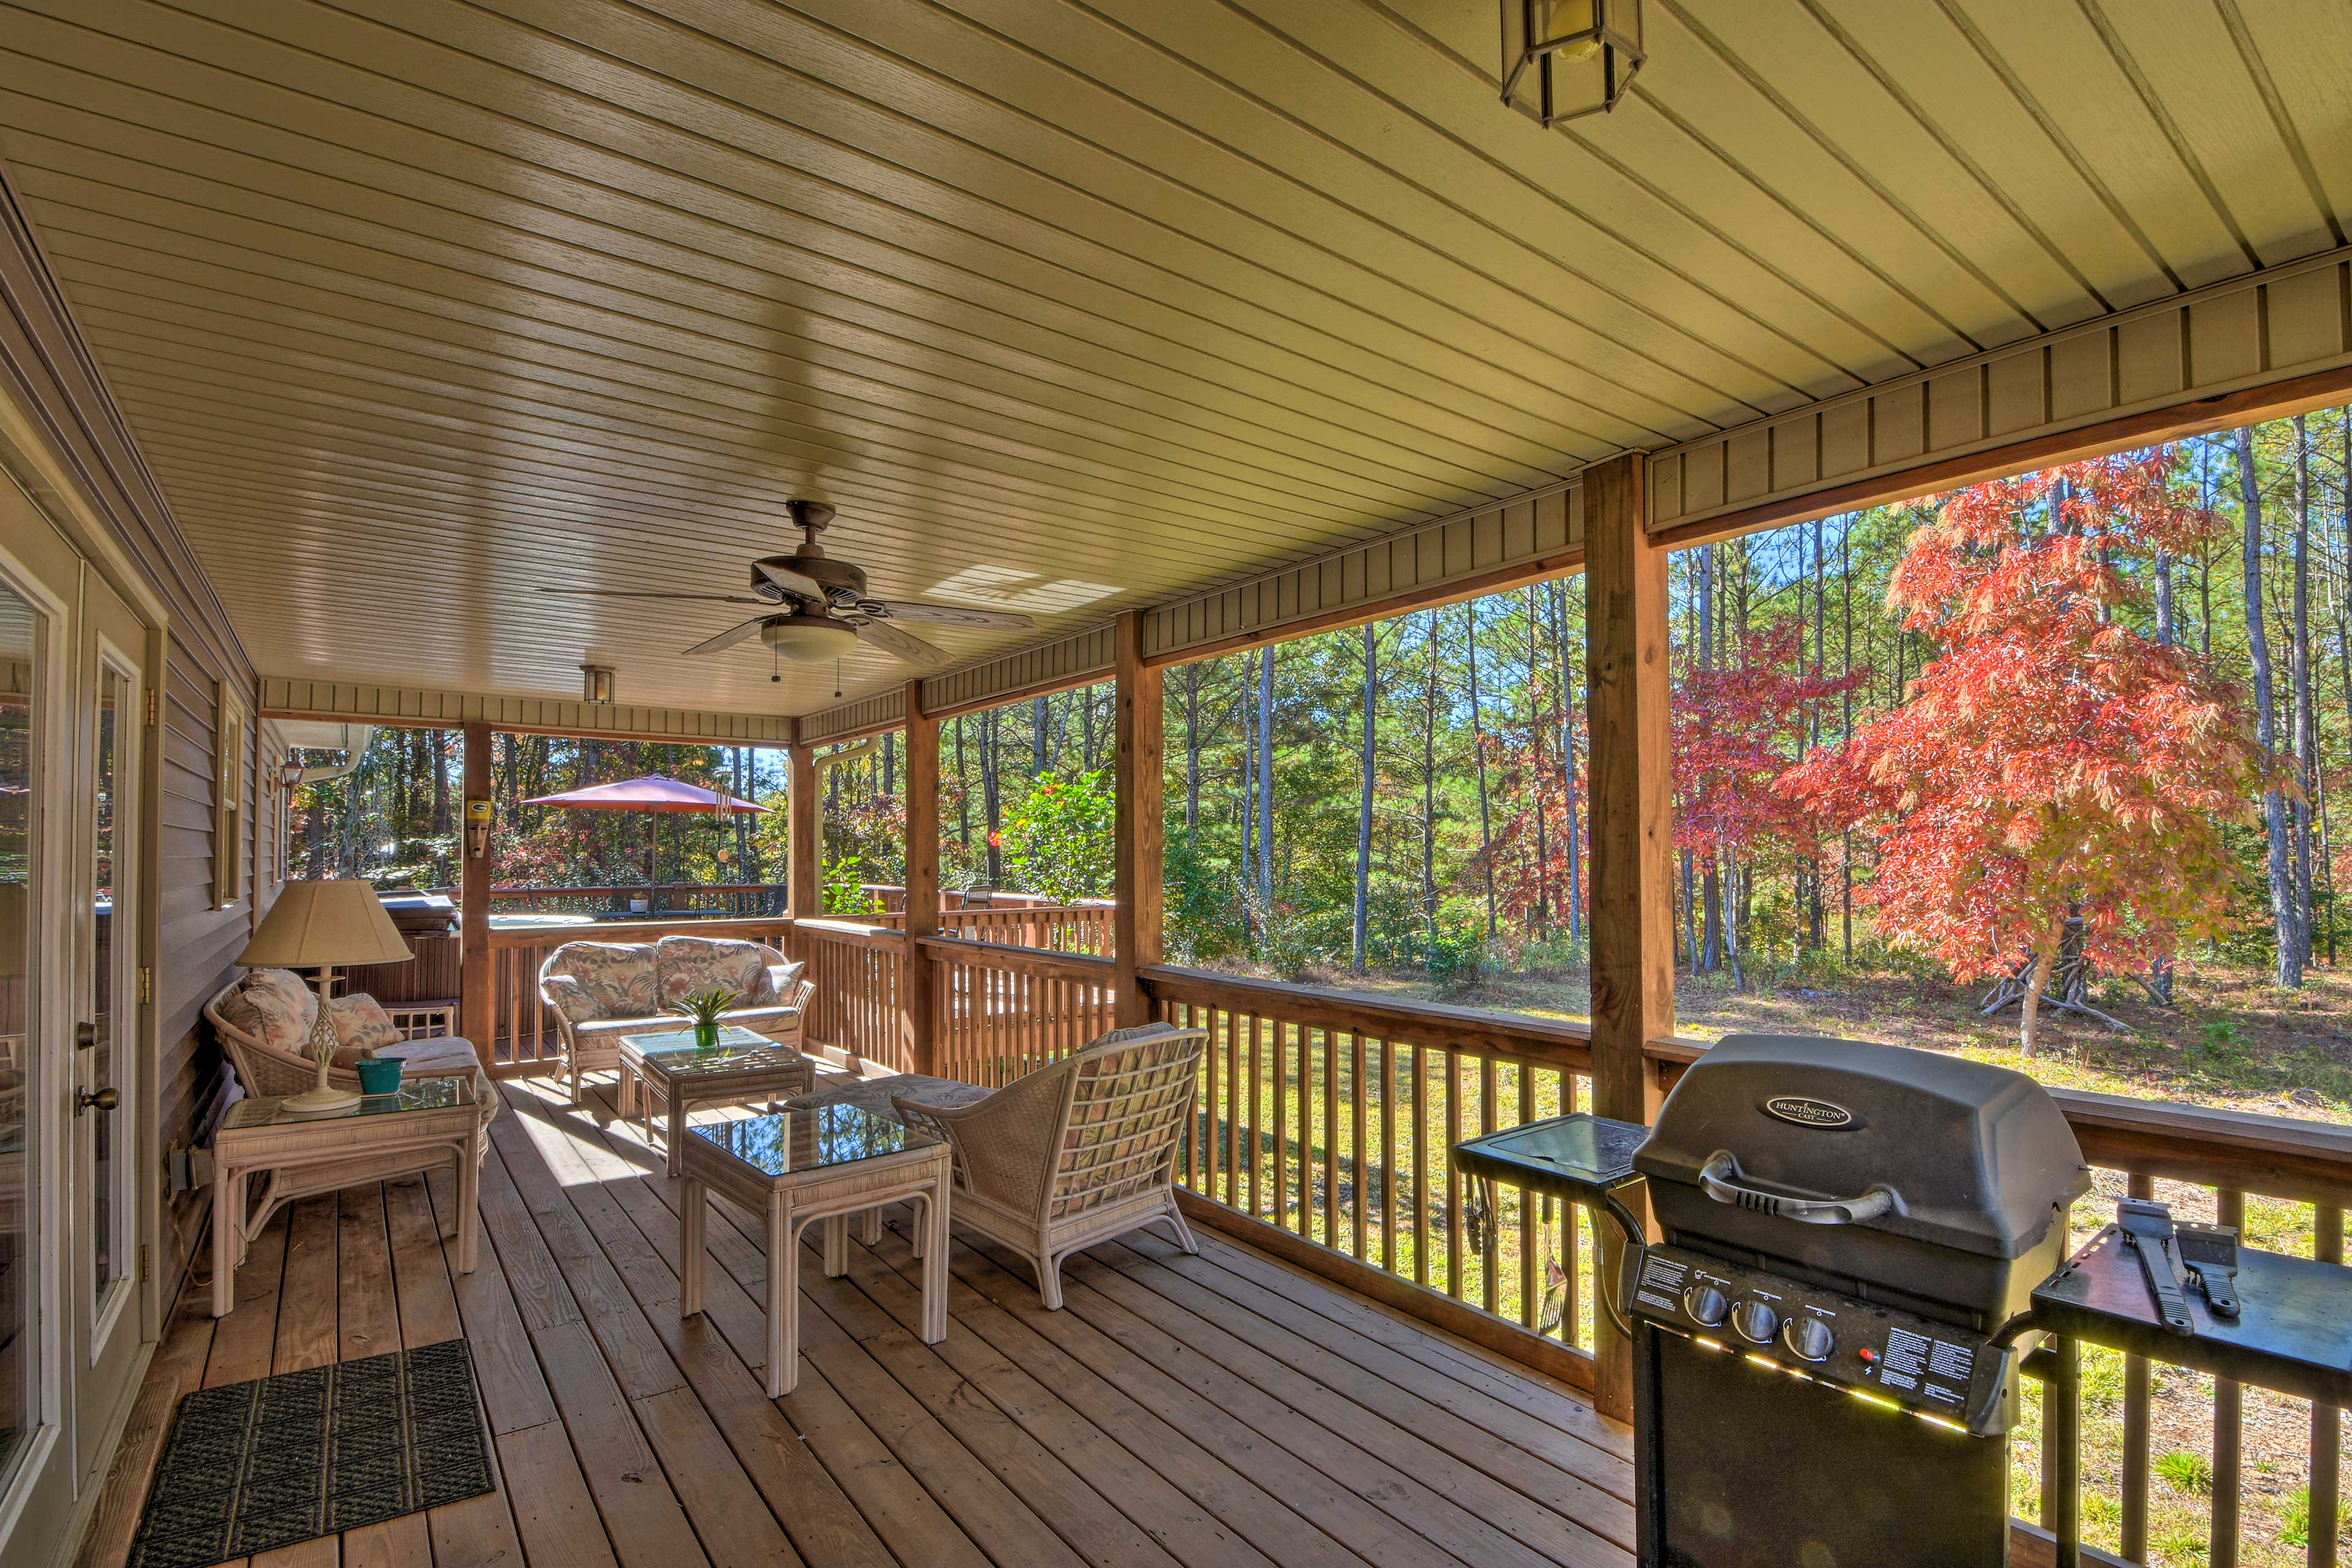 This vacation rental offers a beautiful interior and exterior for up to 6 guests